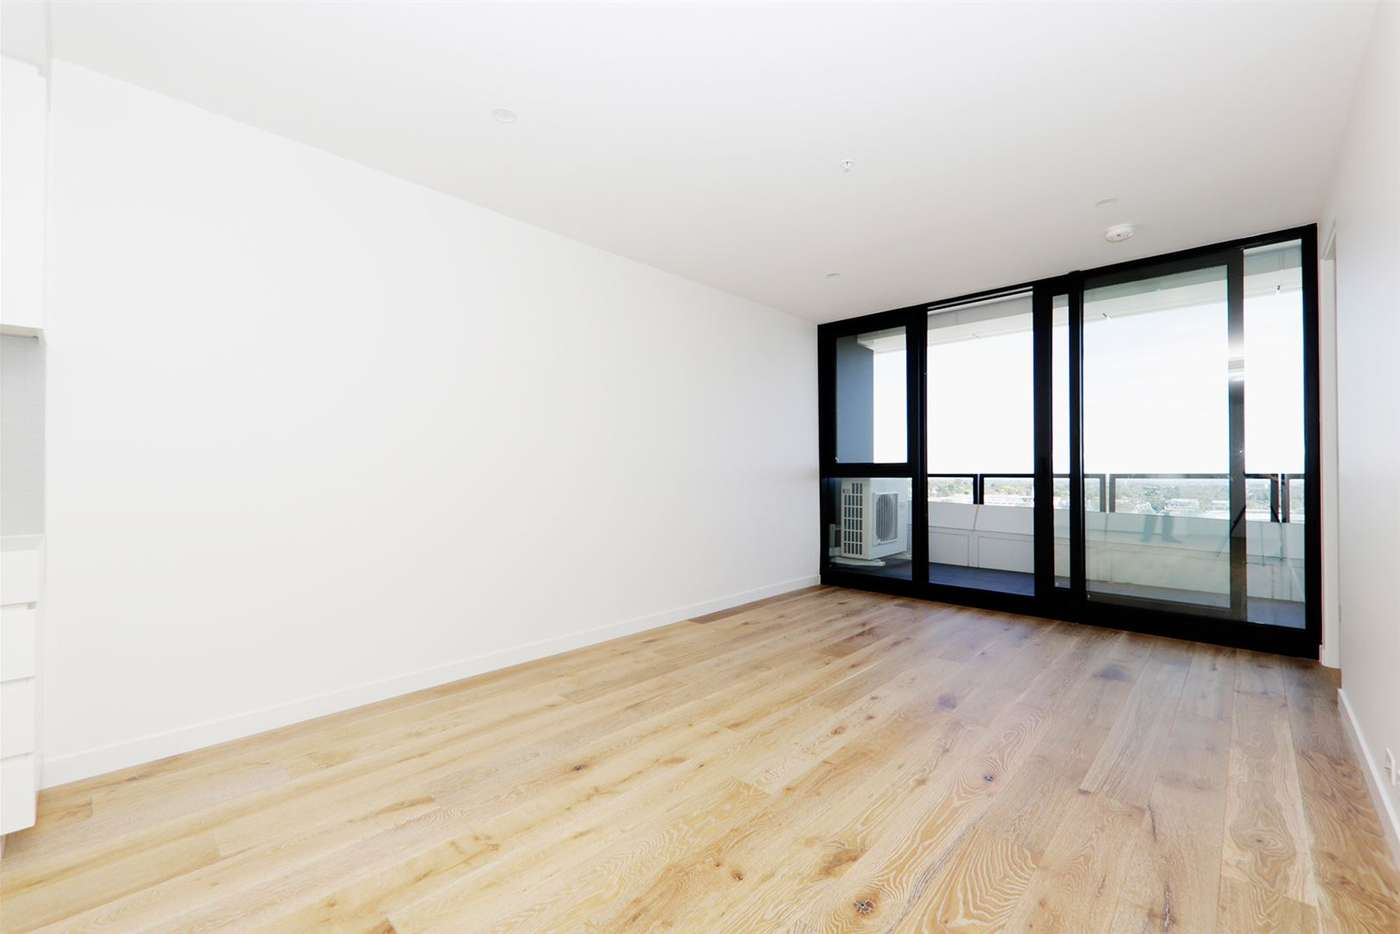 Seventh view of Homely apartment listing, 1314/52-54 Osullivan Road, Glen Waverley VIC 3150